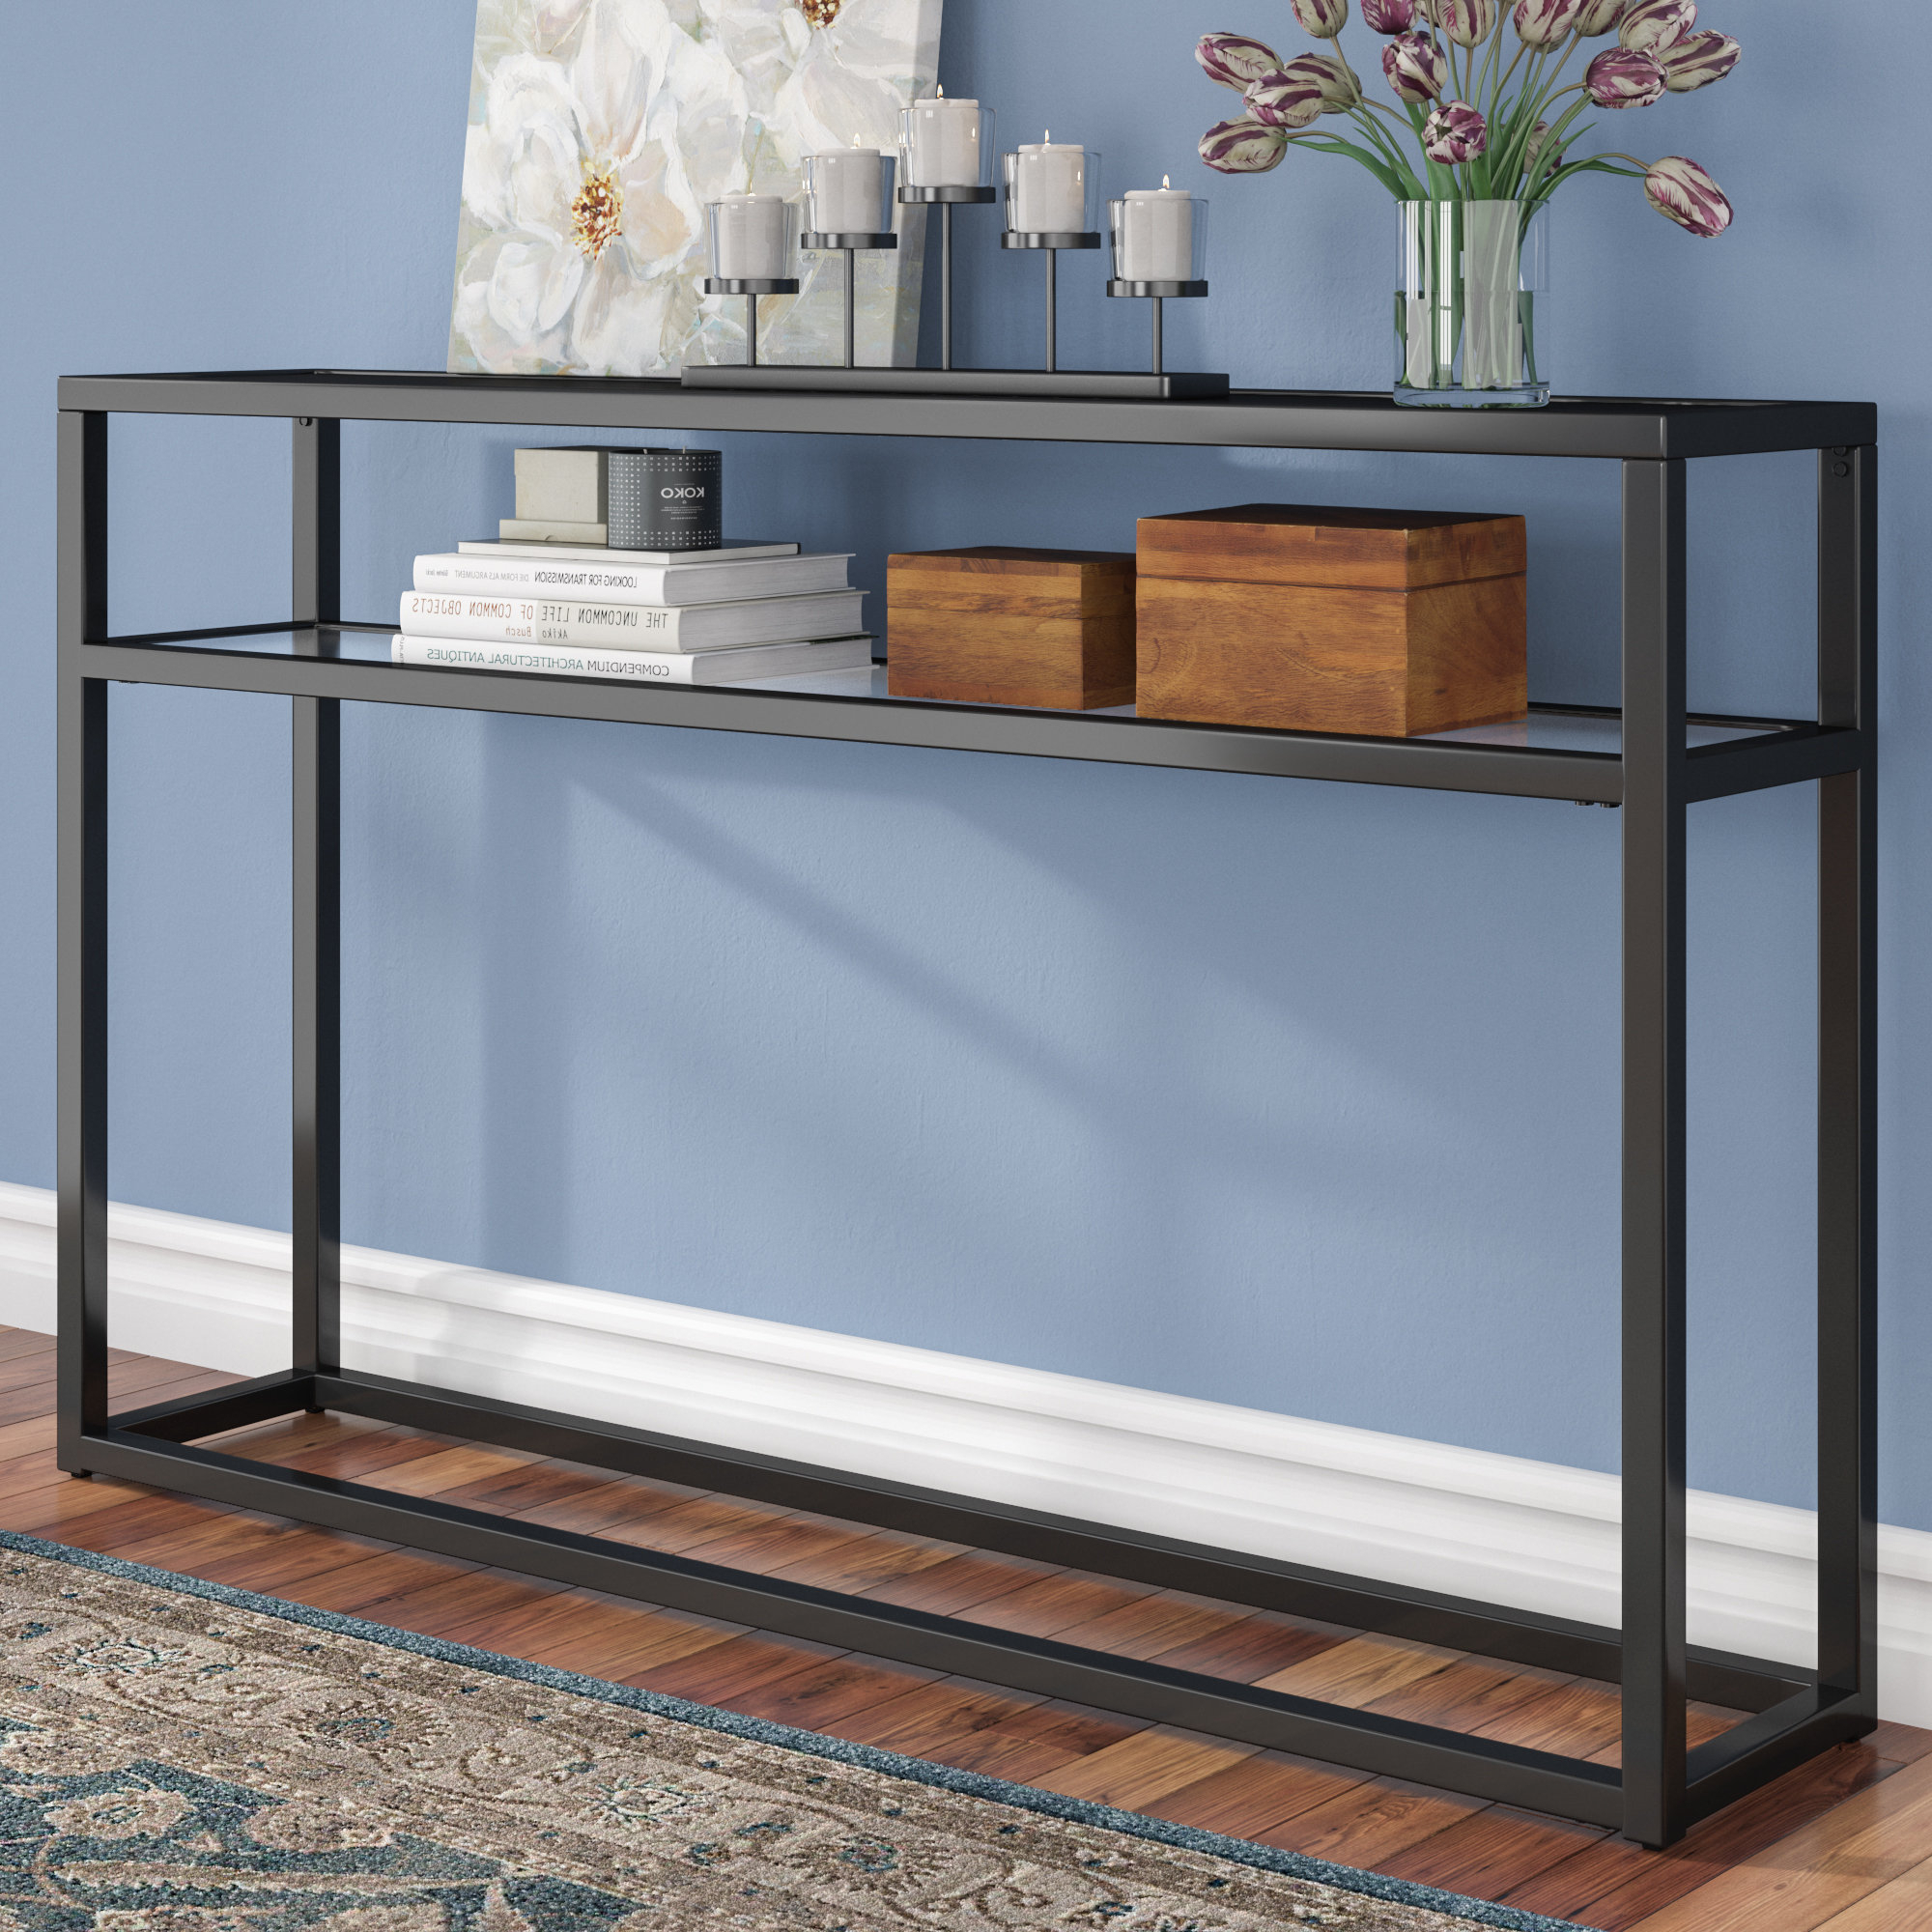 Narrow Low Console Table | Wayfair Inside Layered Wood Small Square Console Tables (View 6 of 20)